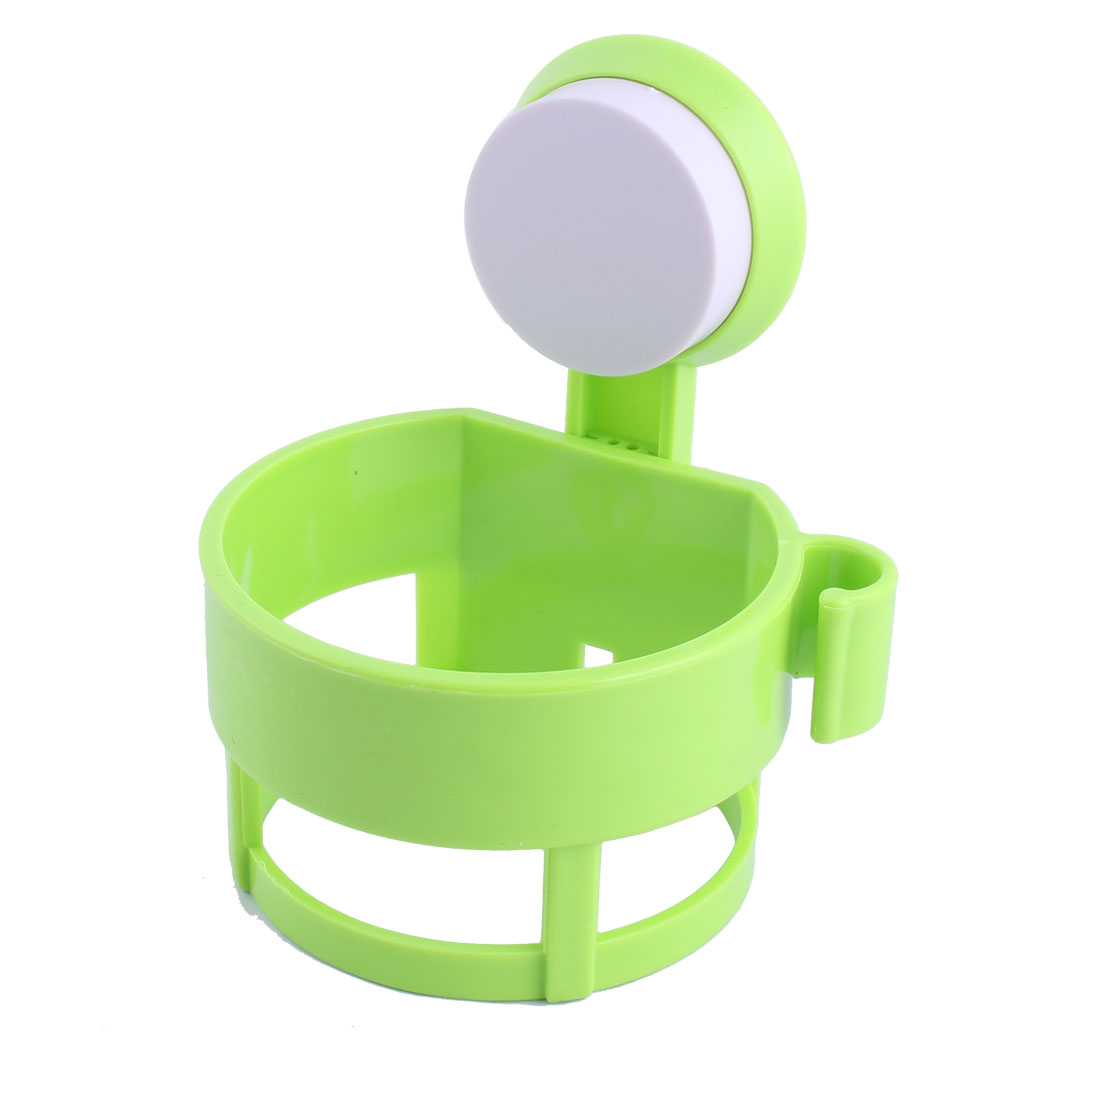 Home Bathroom Plastic Wall Suction Cup Hair Blow Dryer Holder Hanger Stand Green